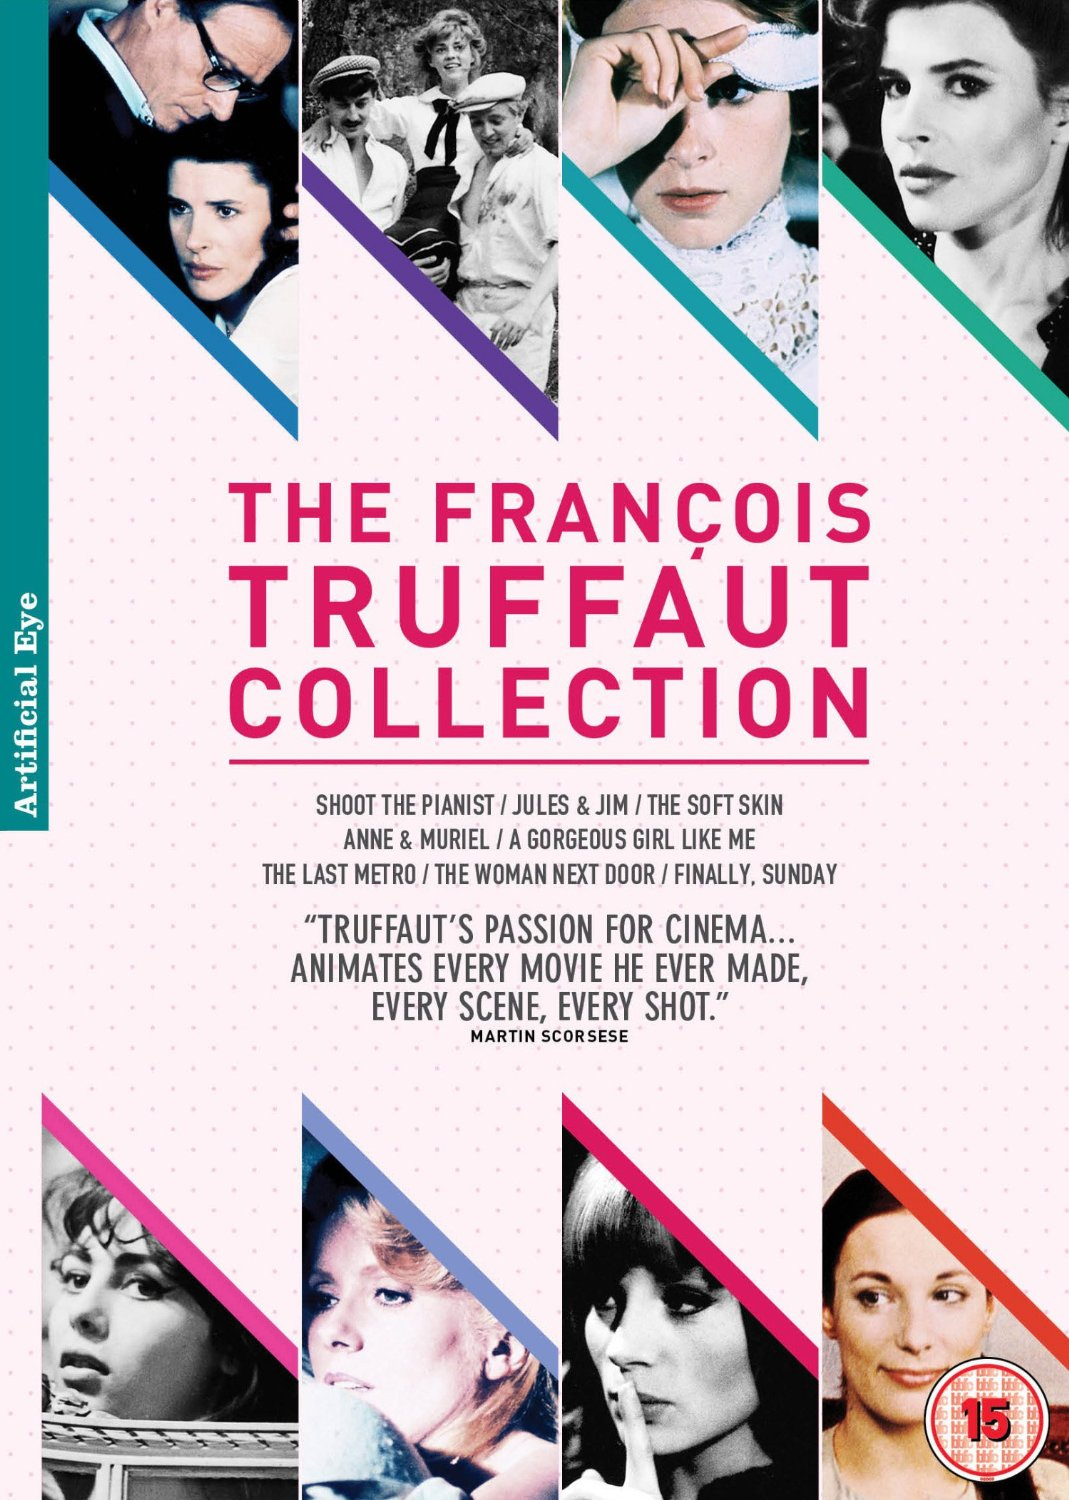 Buy The Francois Truffaut Collection